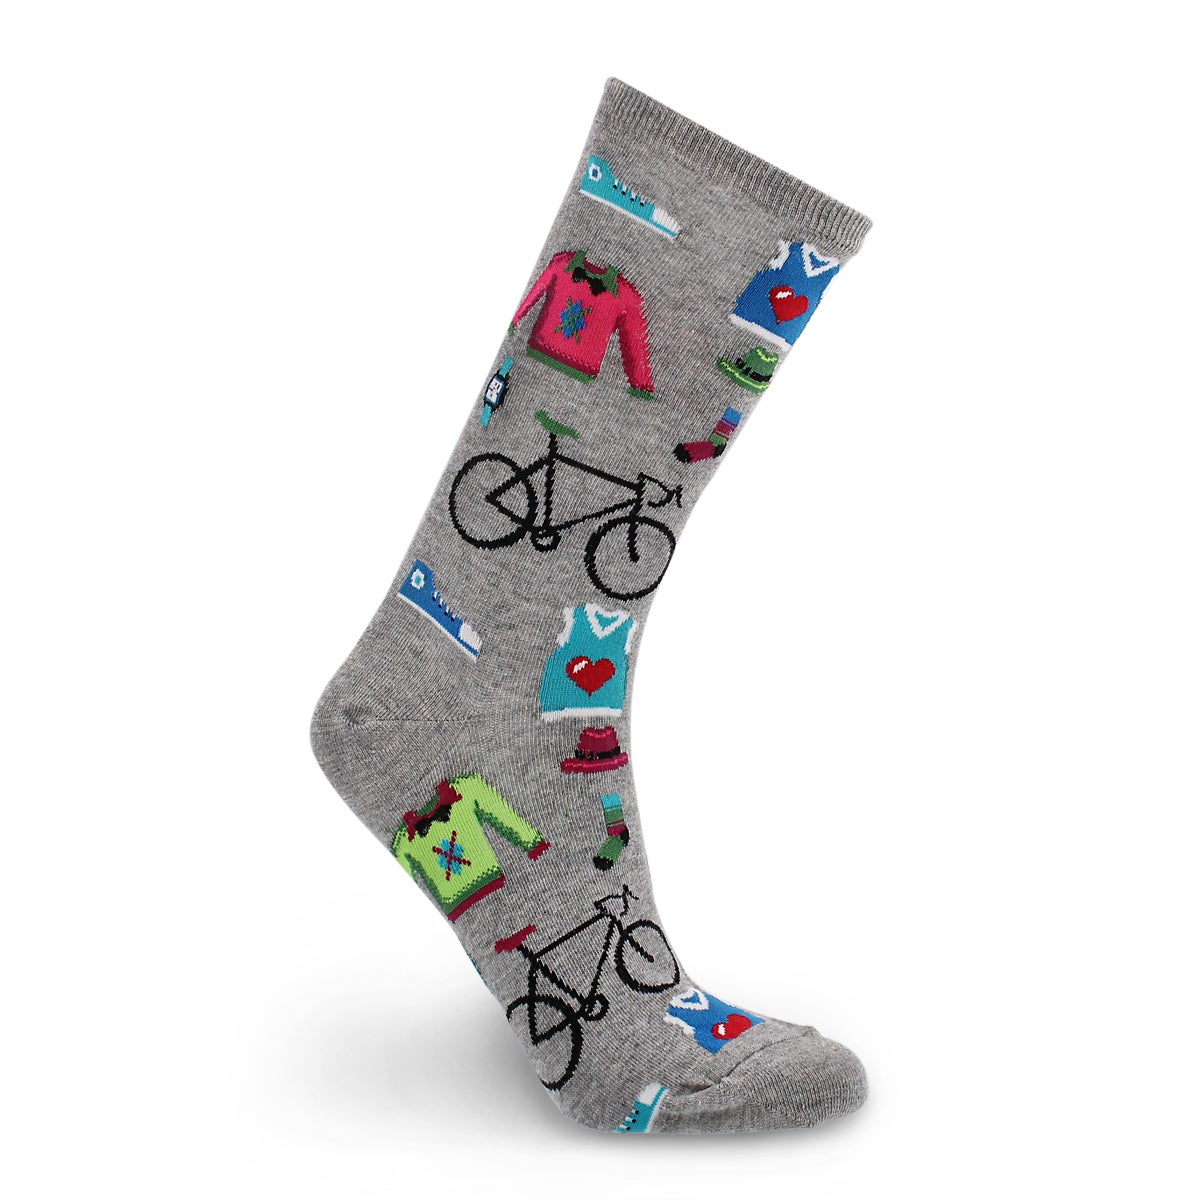 Lds Hipster Wear grey printed sock